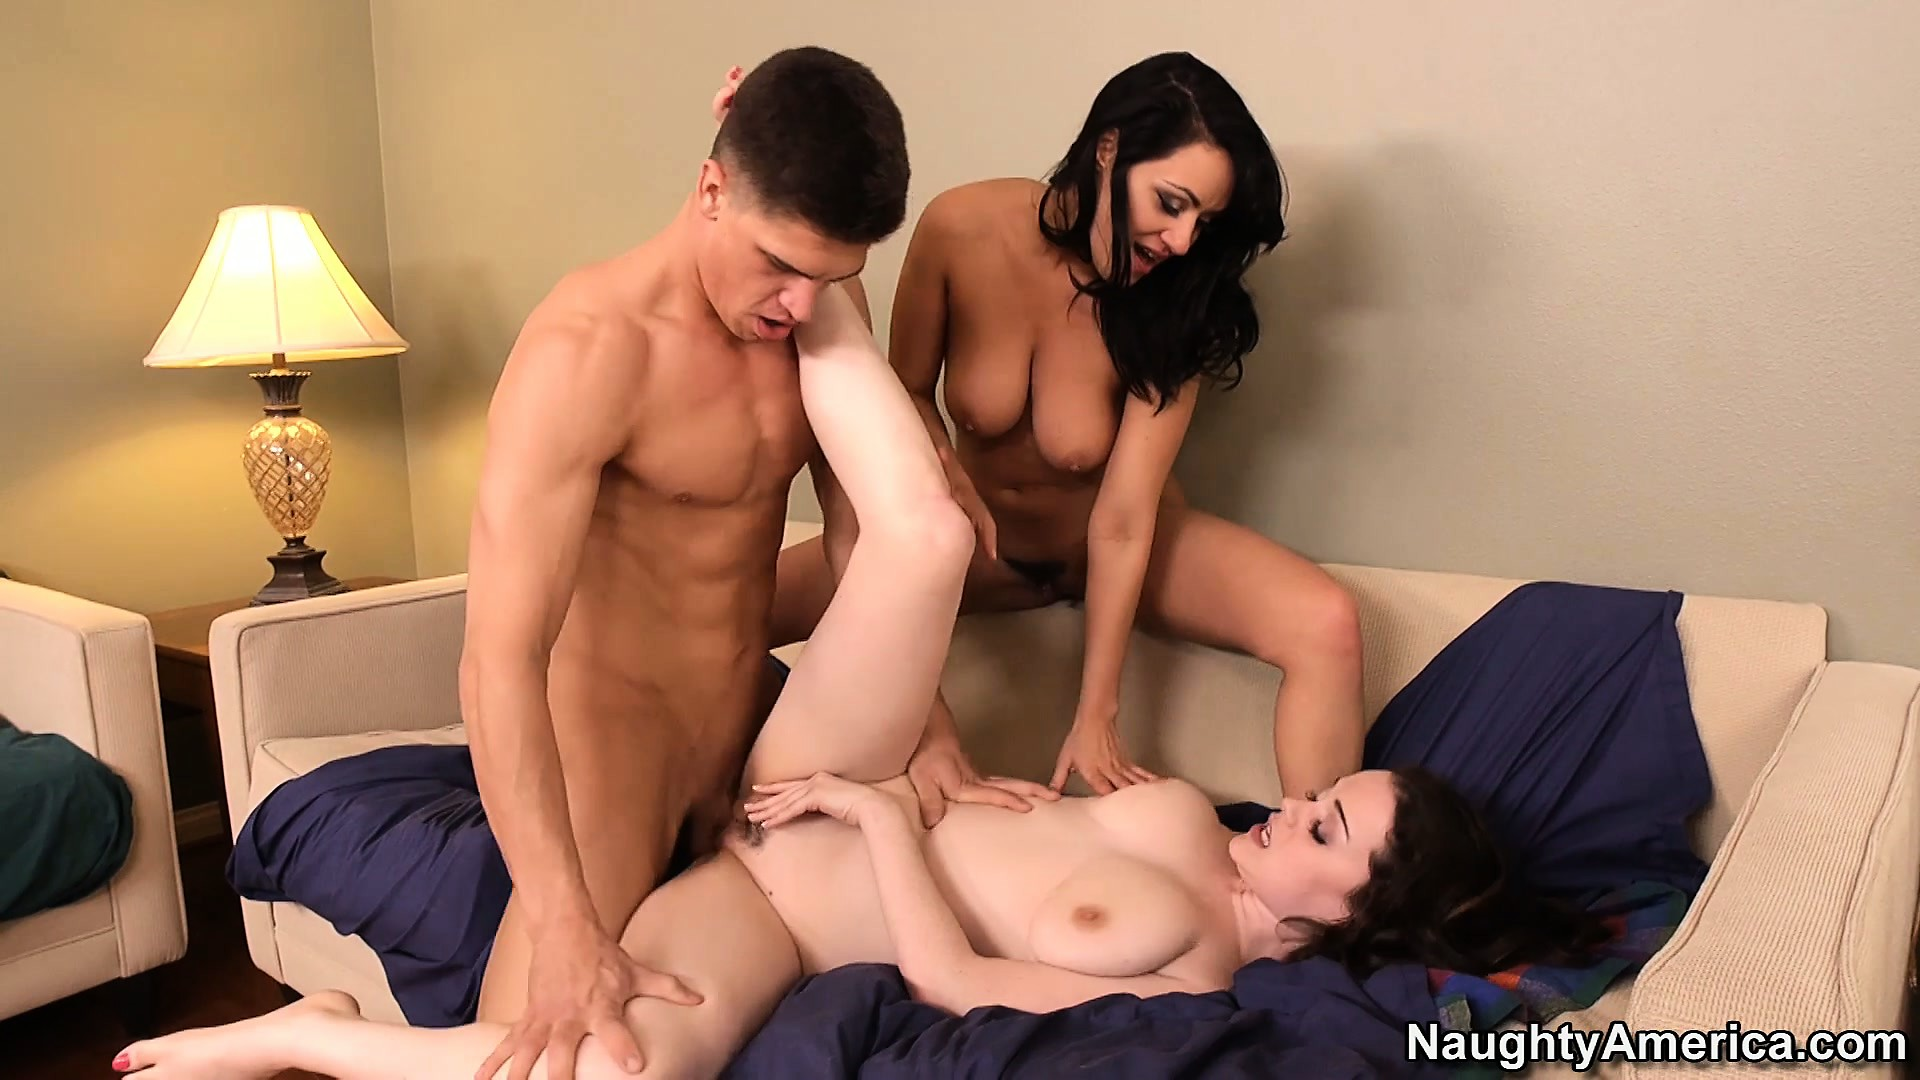 Porno Video of Fanatical Ffm Threesome Fun With Slutty Charley Chase And Friends